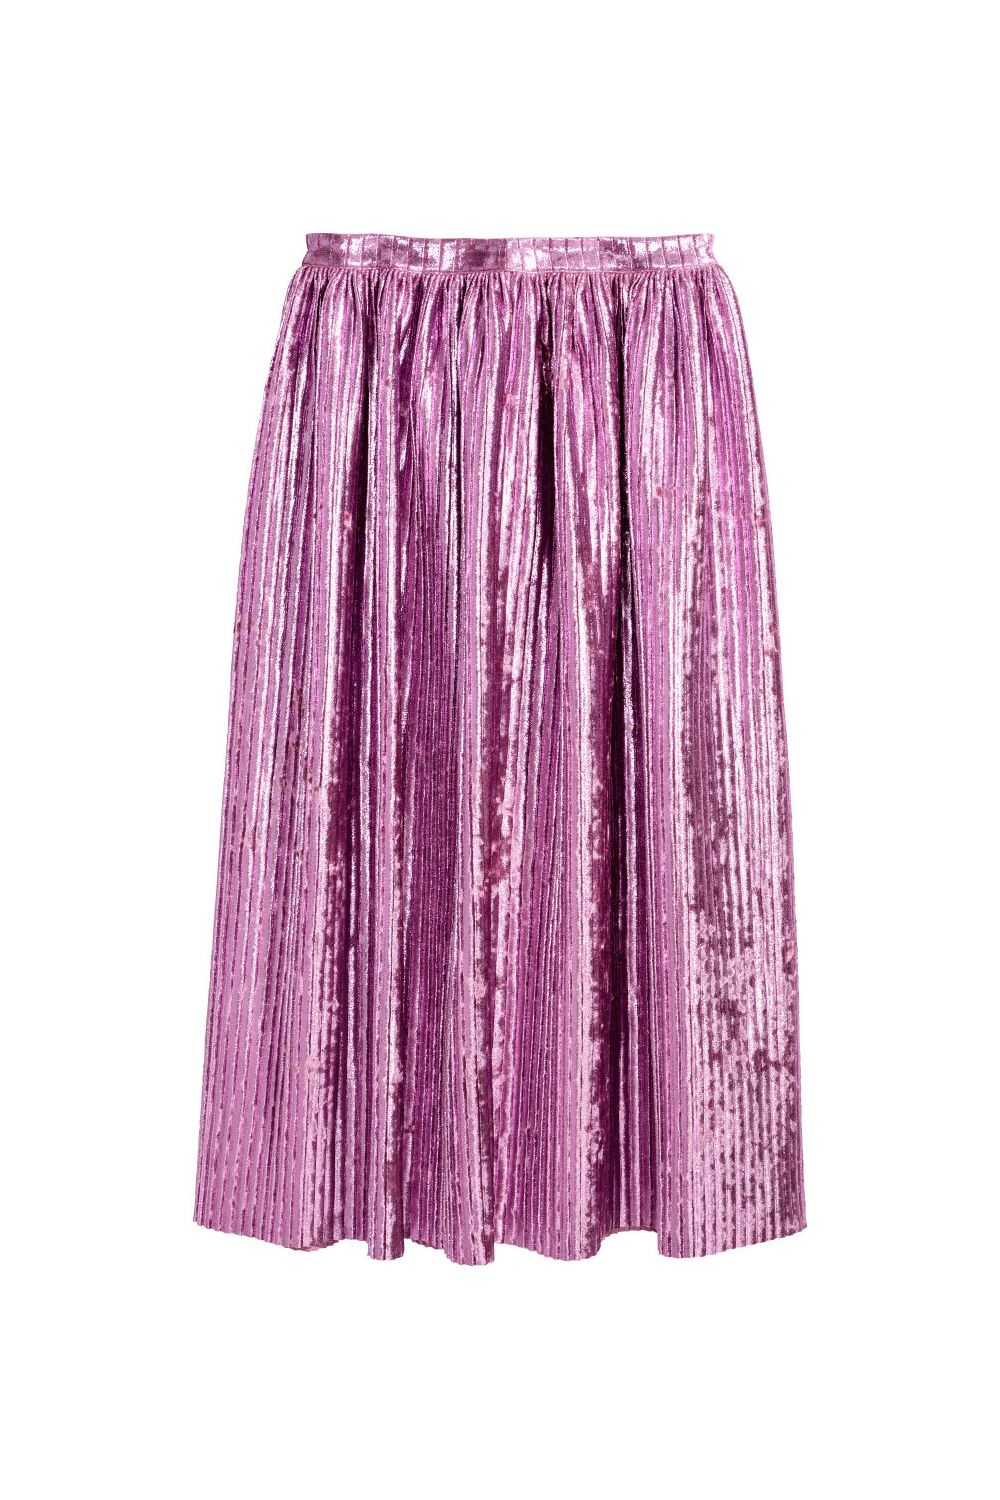 "<p>The pleated midi skirt: Still not dead. Get it now in this extra, Gucci-ish pink metallic...</p><p><em data-redactor-tag=""em"" data-verified=""redactor"">H&M, $70</em></p><p><strong data-redactor-tag=""strong"" data-verified=""redactor"">BUY IT: </strong><span class=""redactor-invisible-space"" data-verified=""redactor"" data-redactor-tag=""span"" data-redactor-class=""redactor-invisible-space""><strong data-redactor-tag=""strong"" data-verified=""redactor""><a href=""http://www.hm.com/us/product/67717?article=67717-A"" target=""_blank"" data-tracking-id=""recirc-text-link"">hm.com</a>.</strong></span></p>"